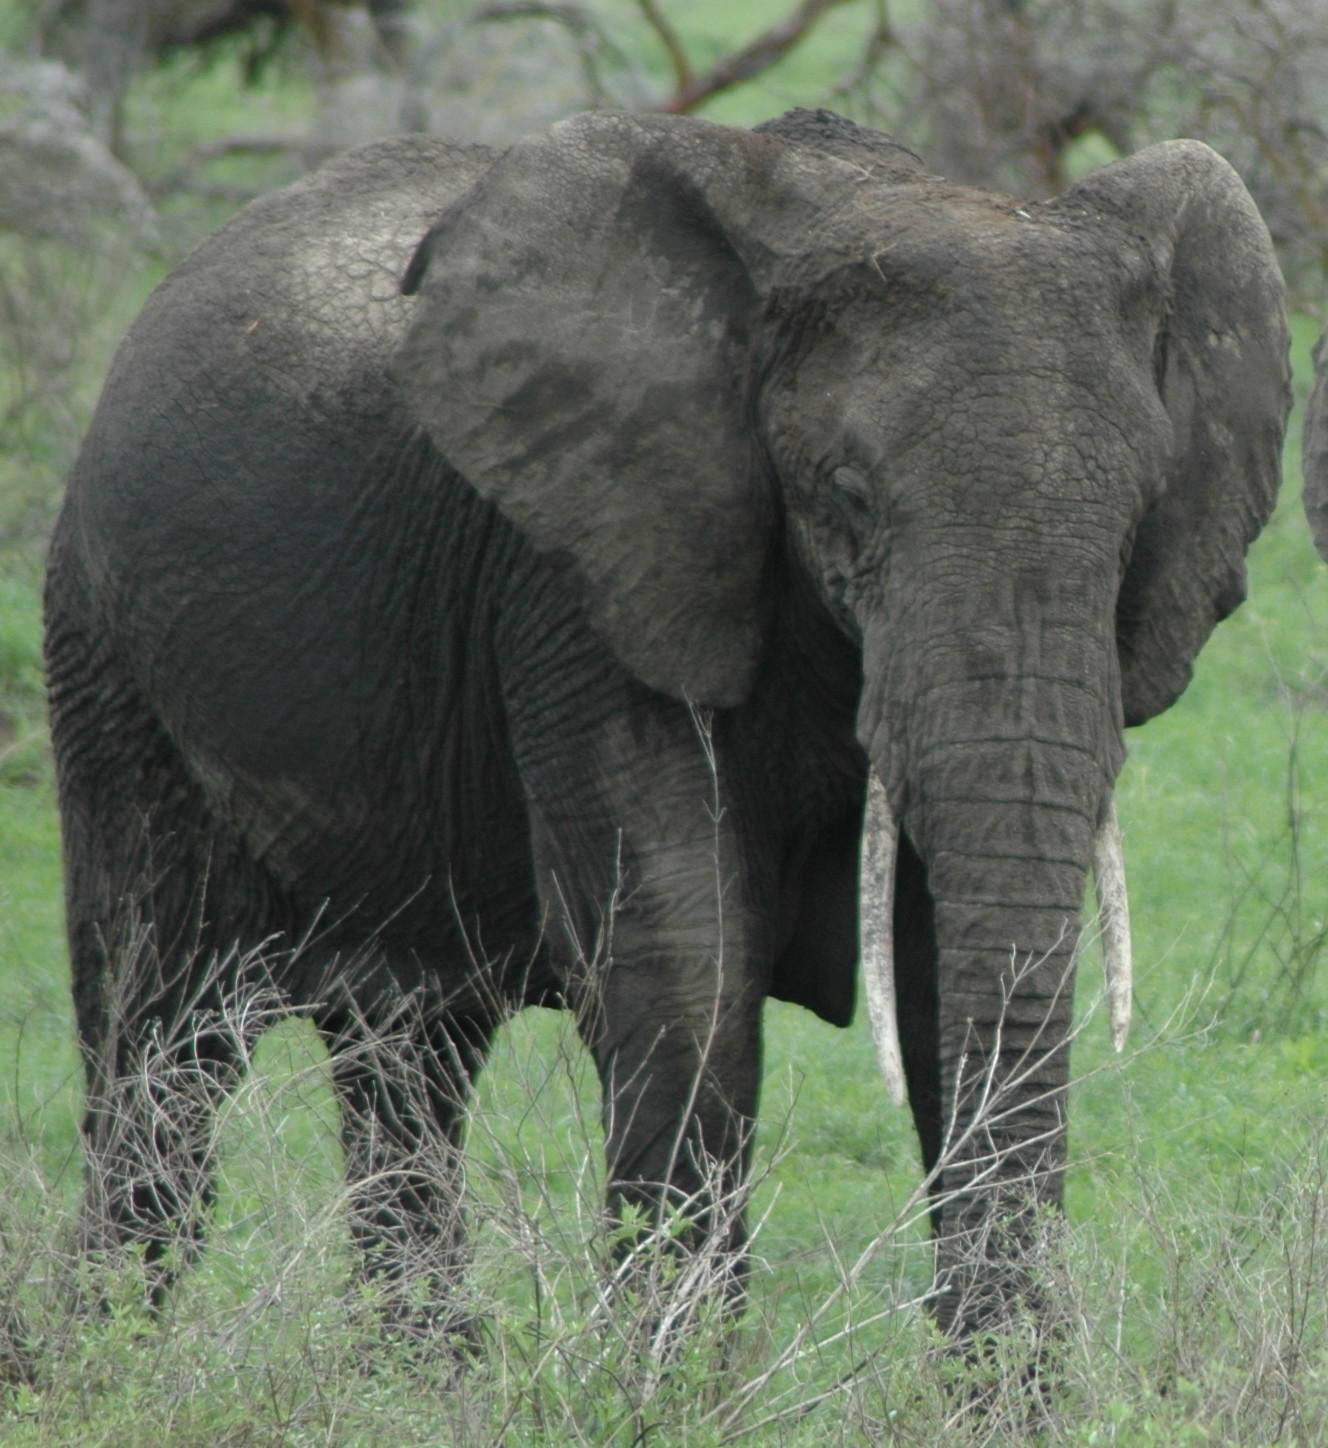 elephants expert quotes